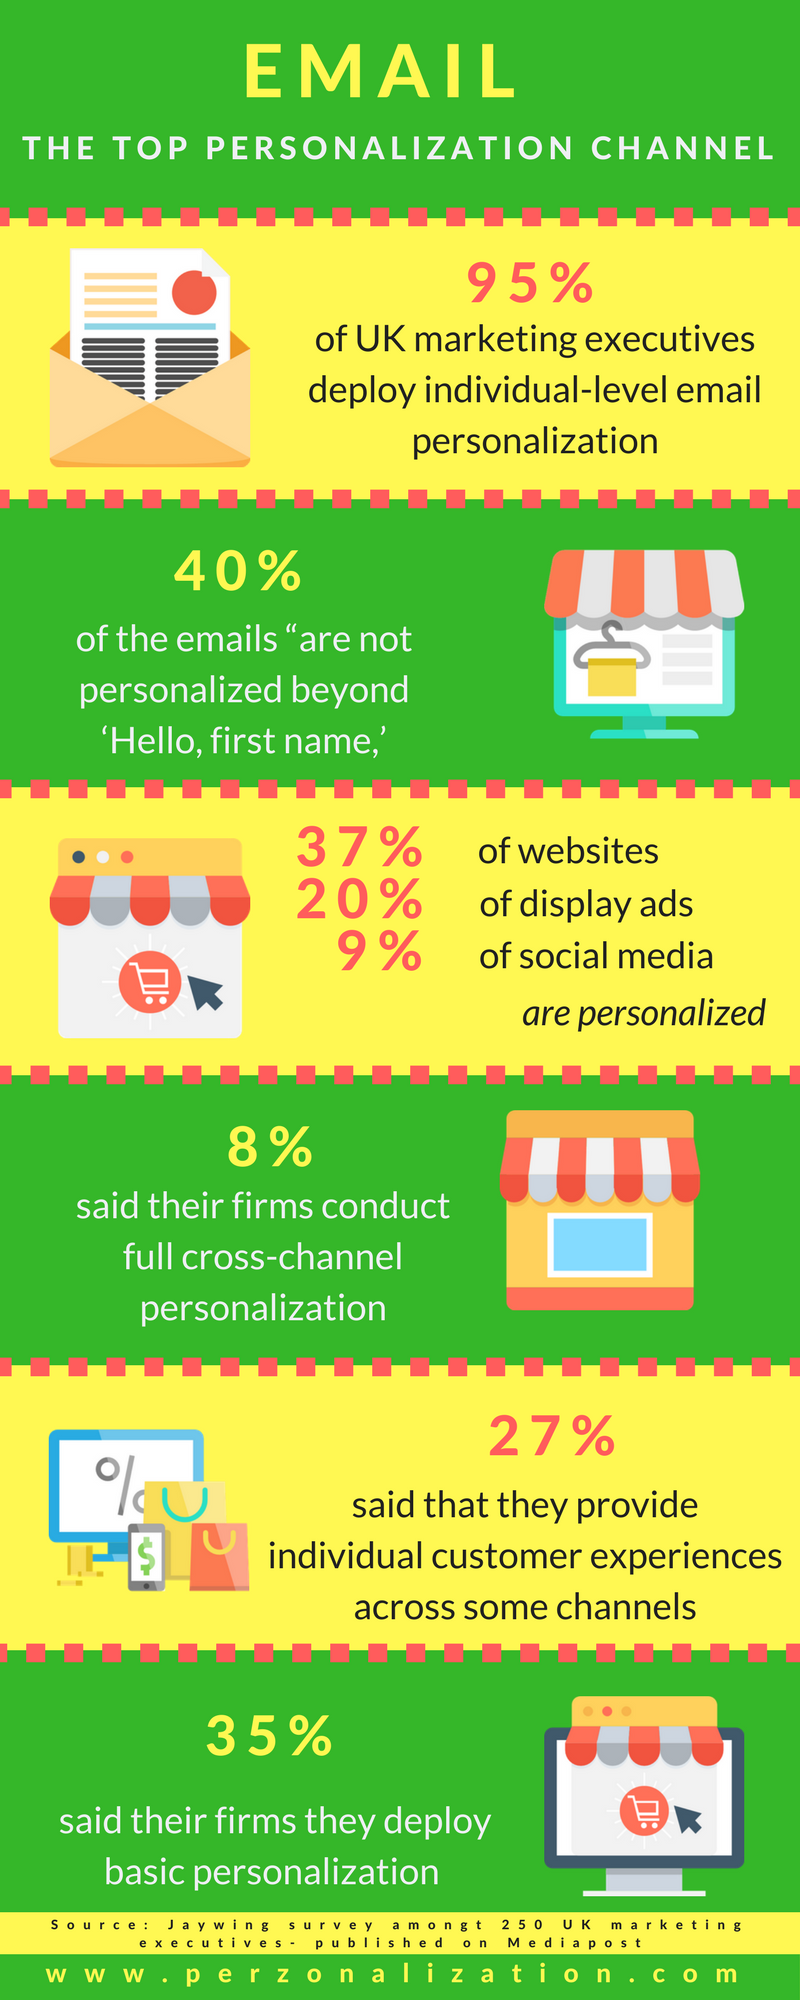 EMAIL IS THE TOP PERSONALIZATION CHANNEL IN THE UK INFOGRAPHIC